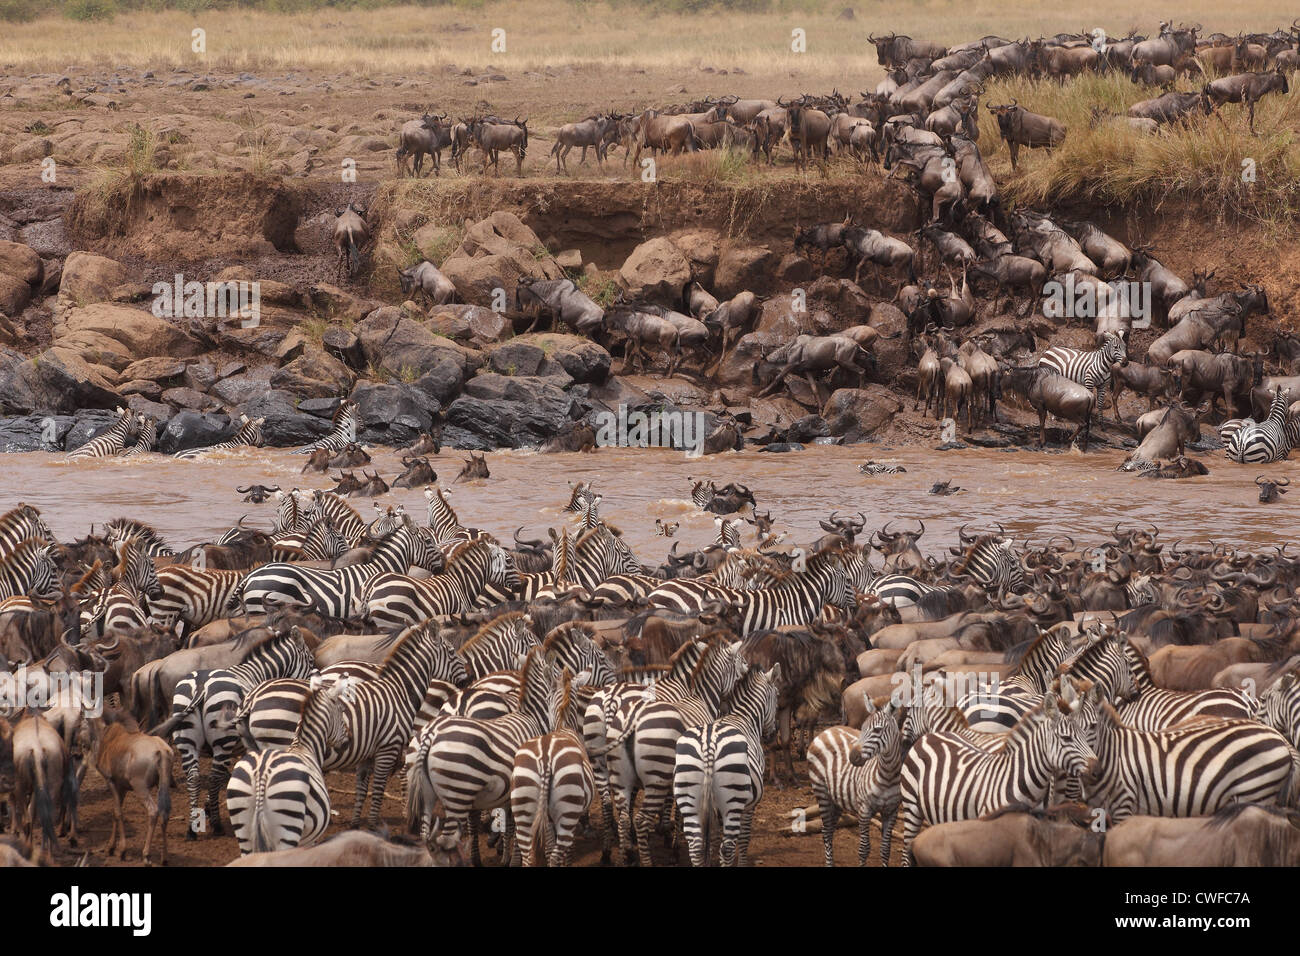 Wildebeest (plural wildebeest or wildebeests, gnu) migration in Masai Mara National Park, Nairobi, Kenya Stock Photo